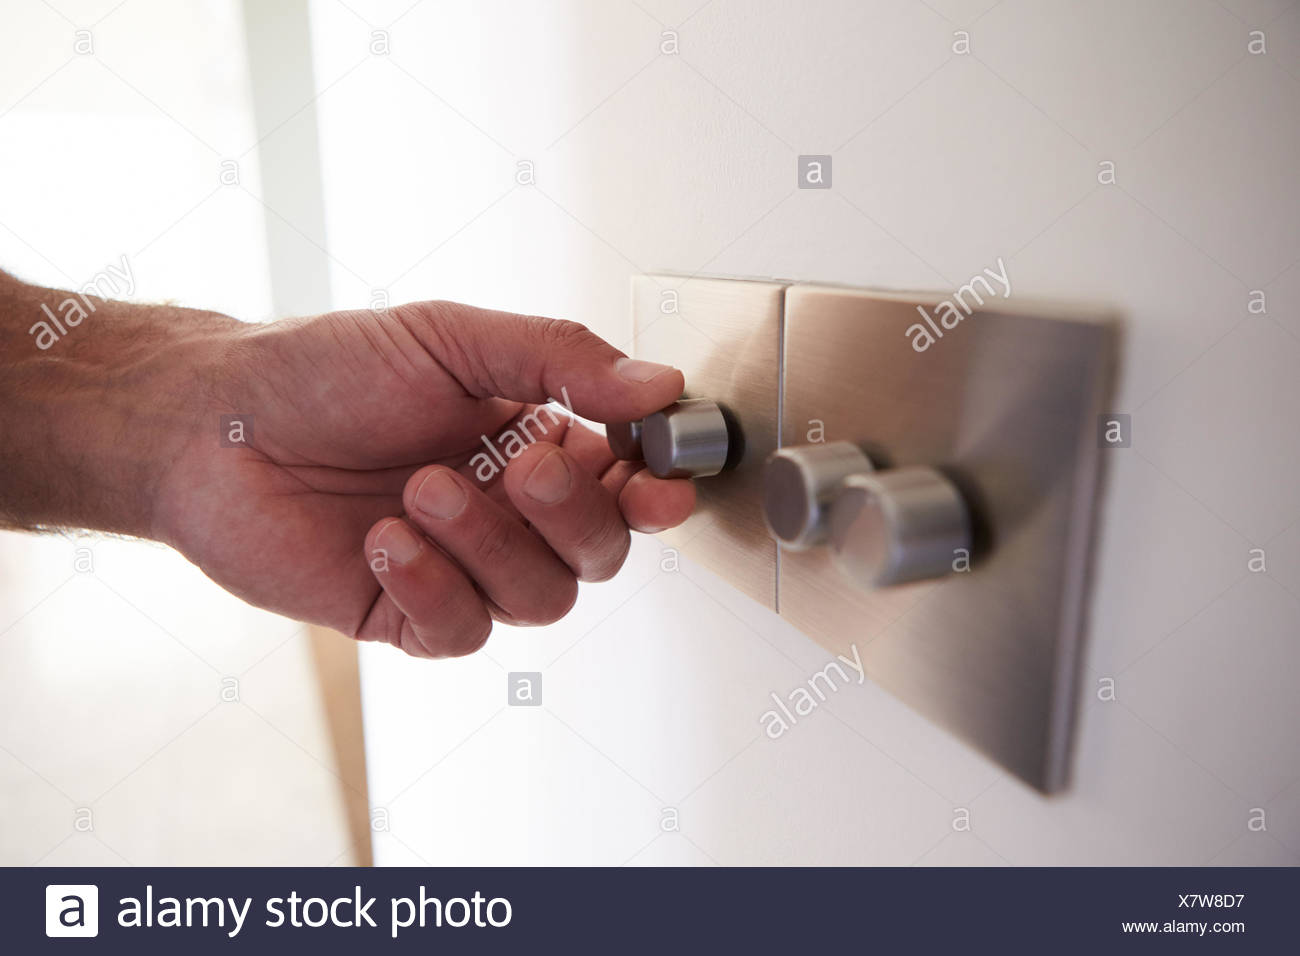 Close Up Shot Of Man Turning Down Electrical Dimmer Switch - Stock Image